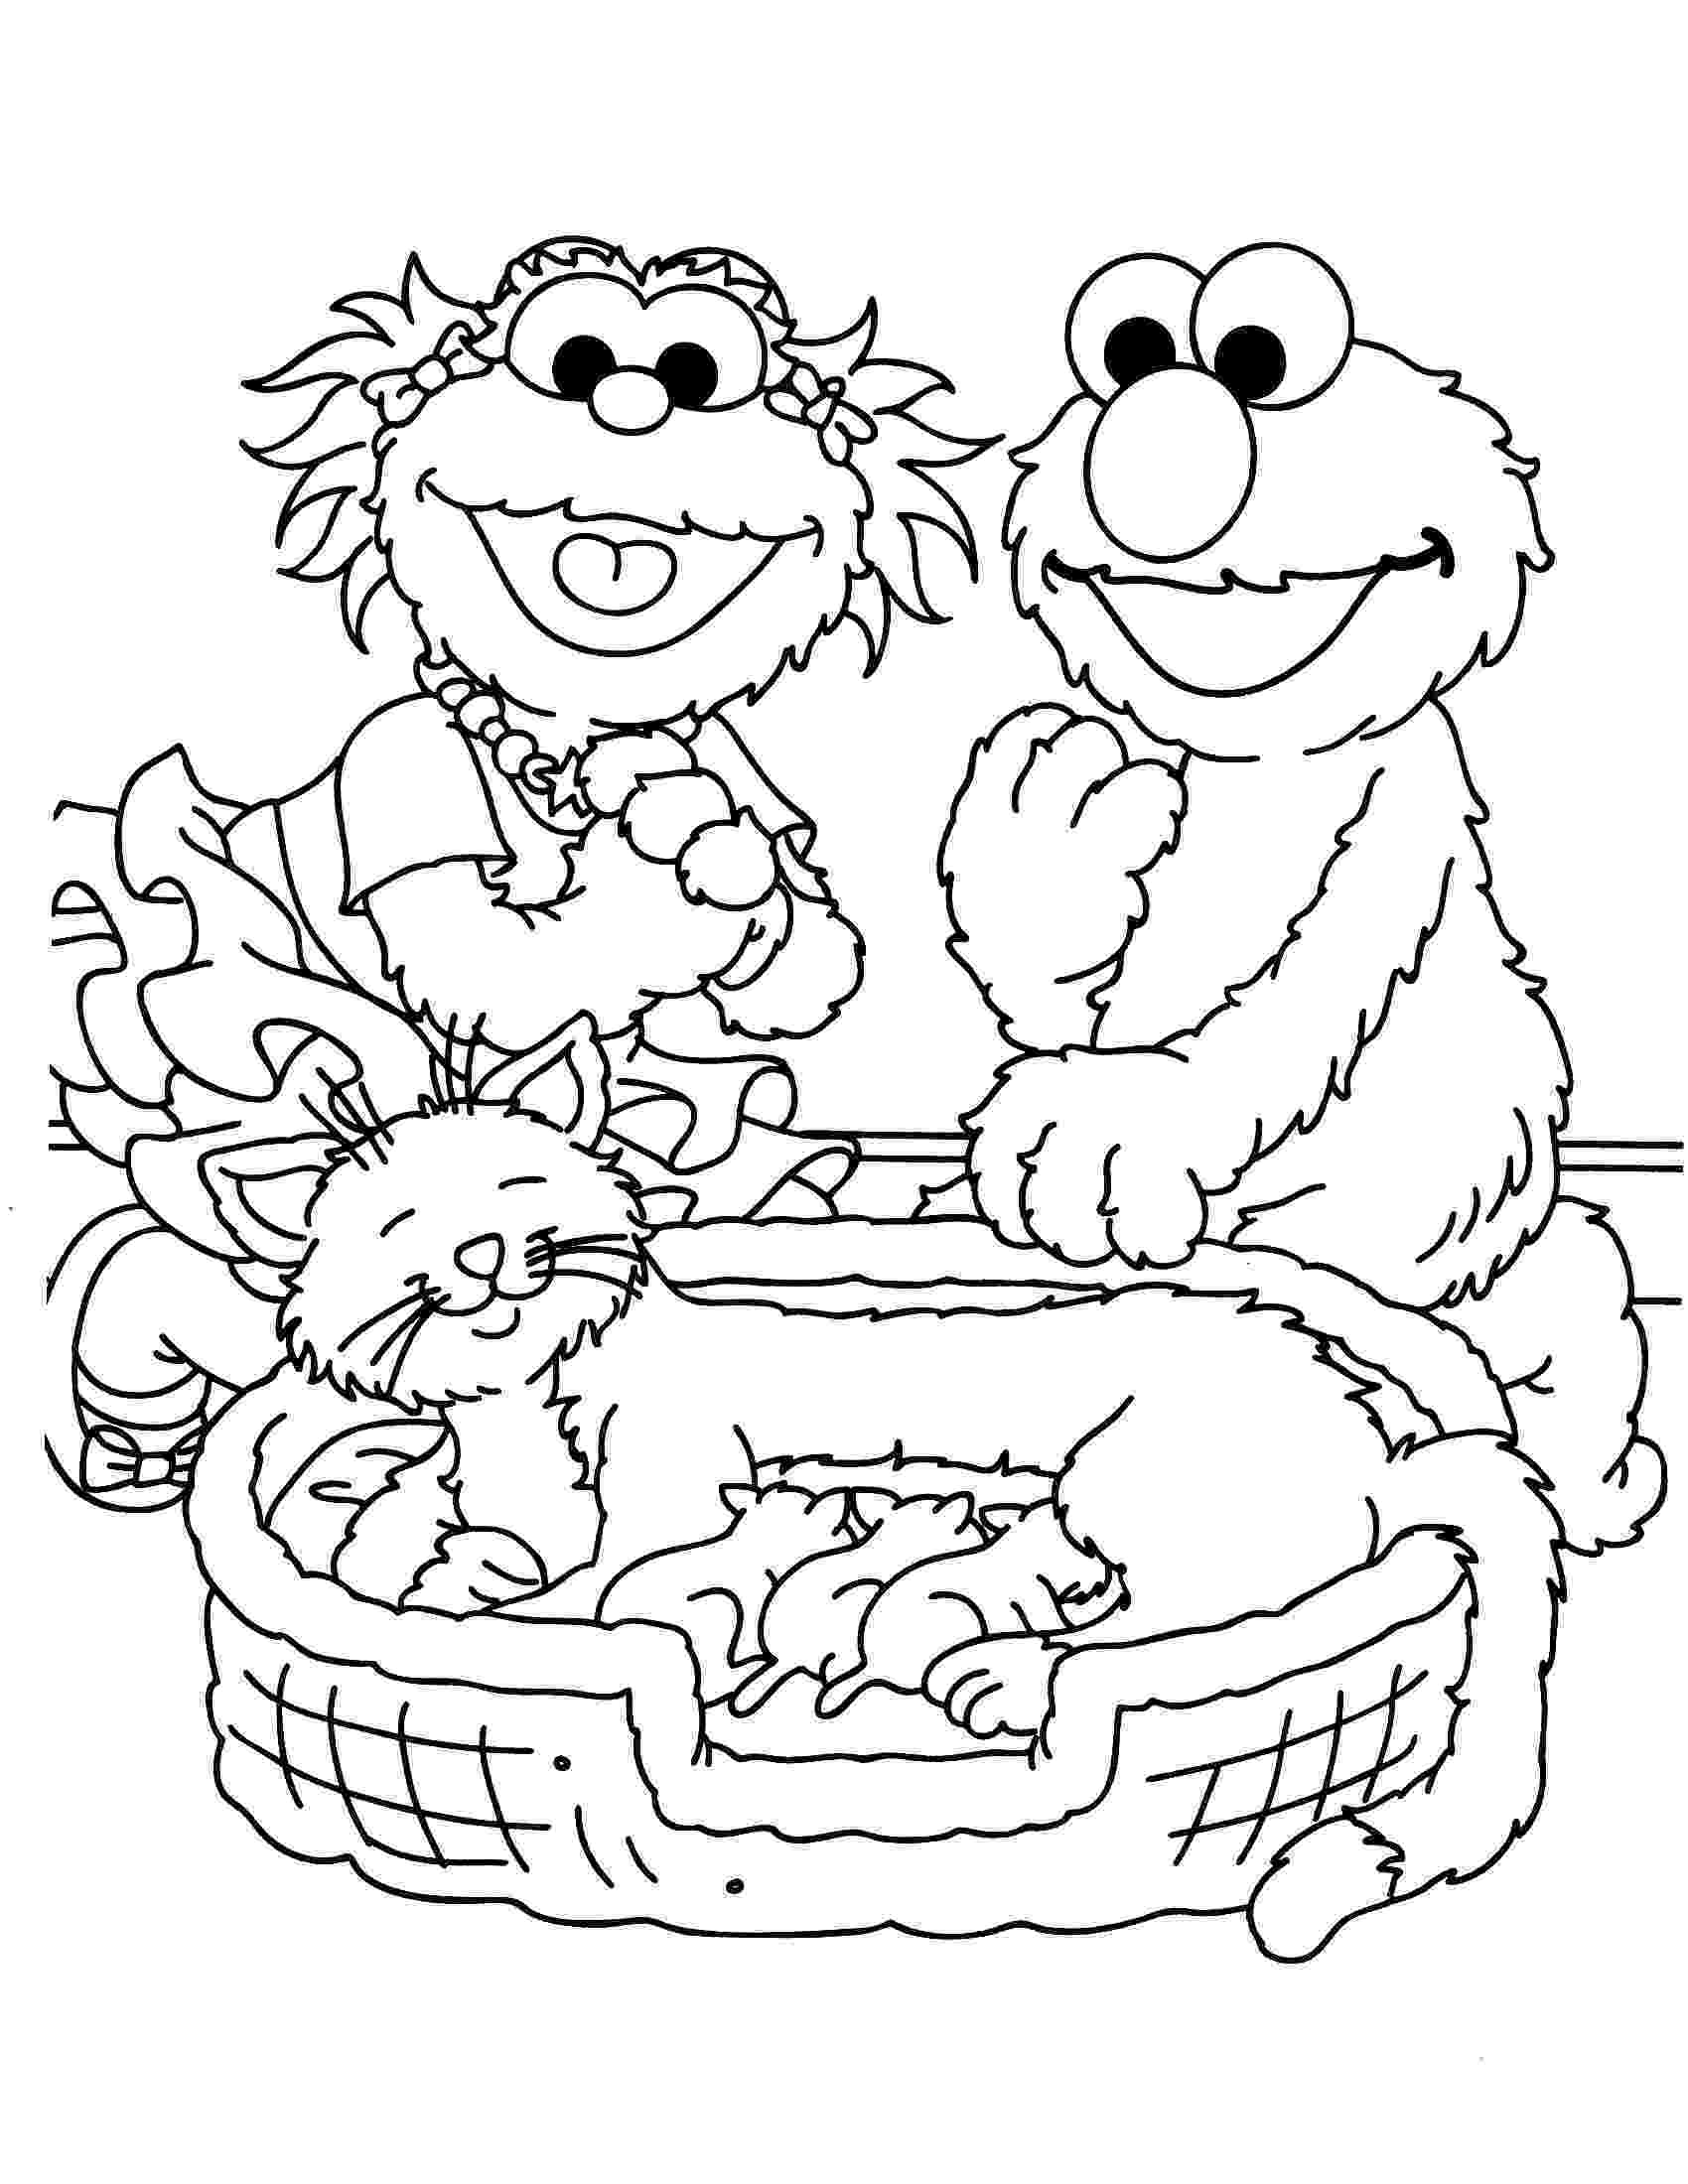 coloring pages of sesame street characters sesame street to print for free sesame street kids of street pages coloring sesame characters